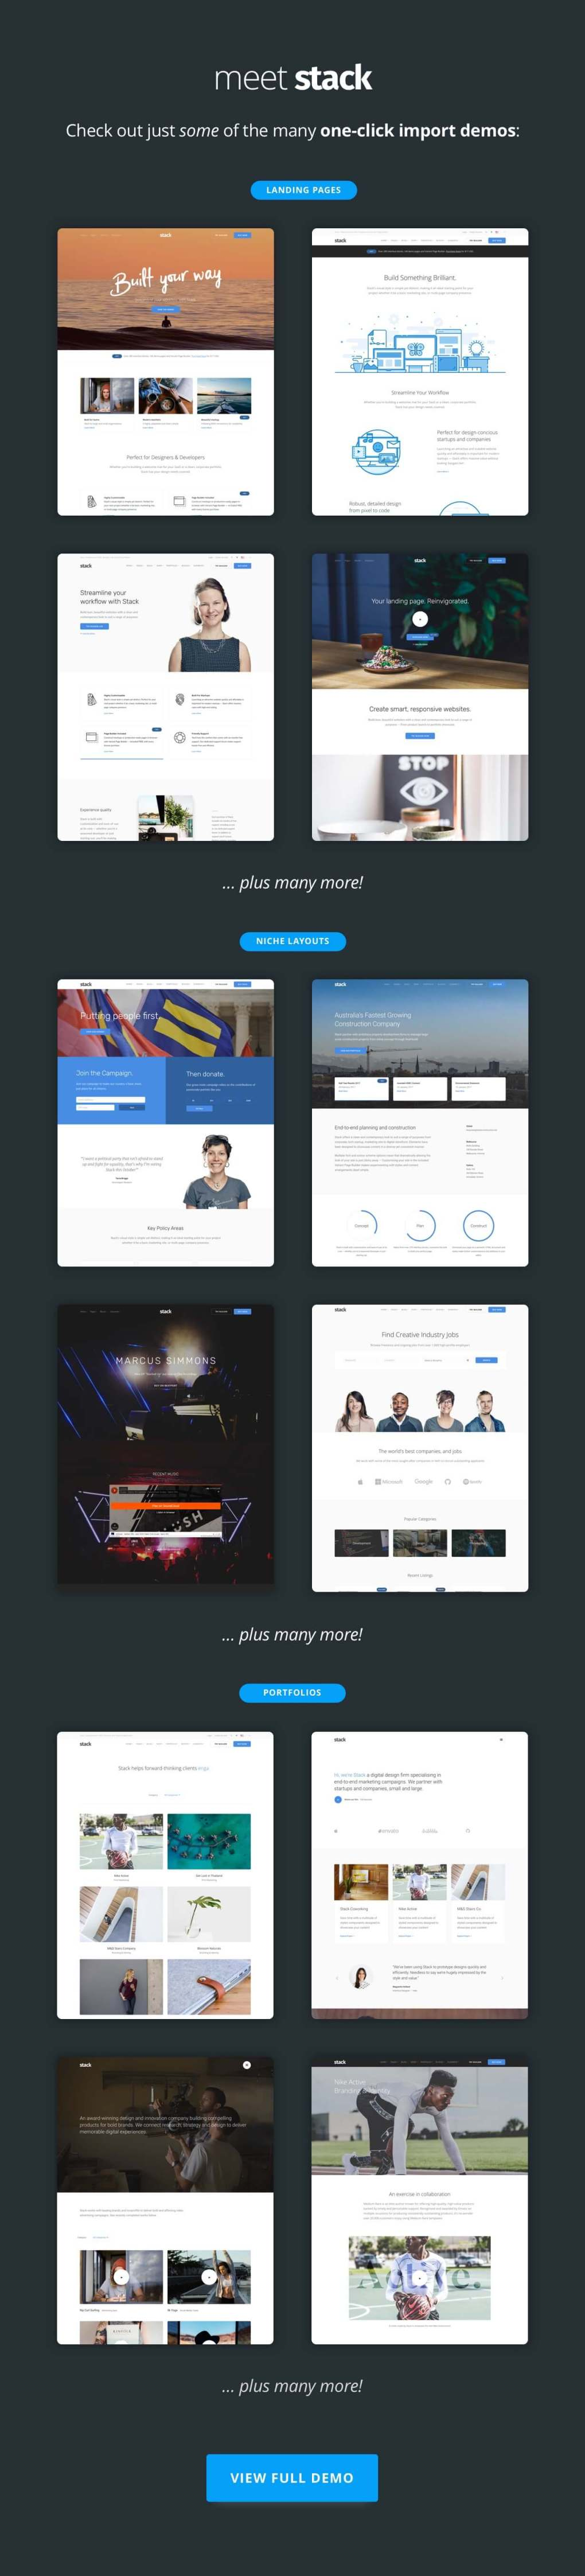 Stack - Multi-Purpose WordPress Theme with Variant Page Builder & Visual Composer 2